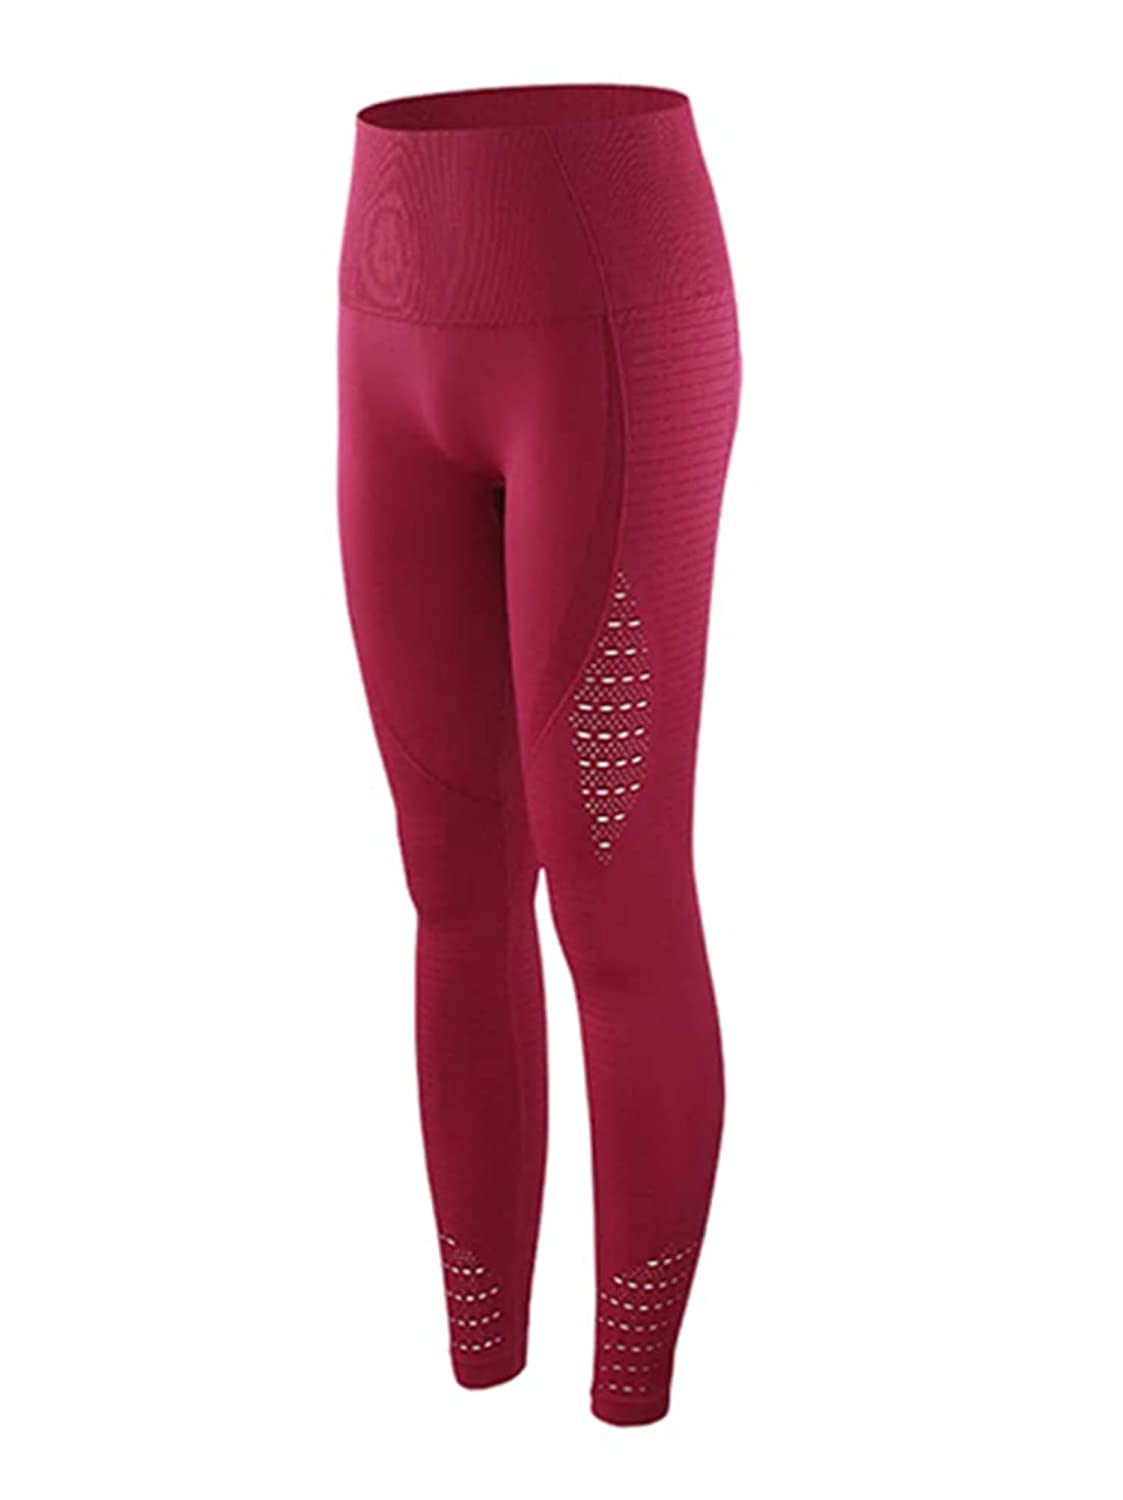 ee193a62df443 UK Women's Gymshark Style Energy Seamless Leggings Gym Sportswear Yoga Pants  Running Training Fitness Activewear: Amazon.co.uk: Clothing